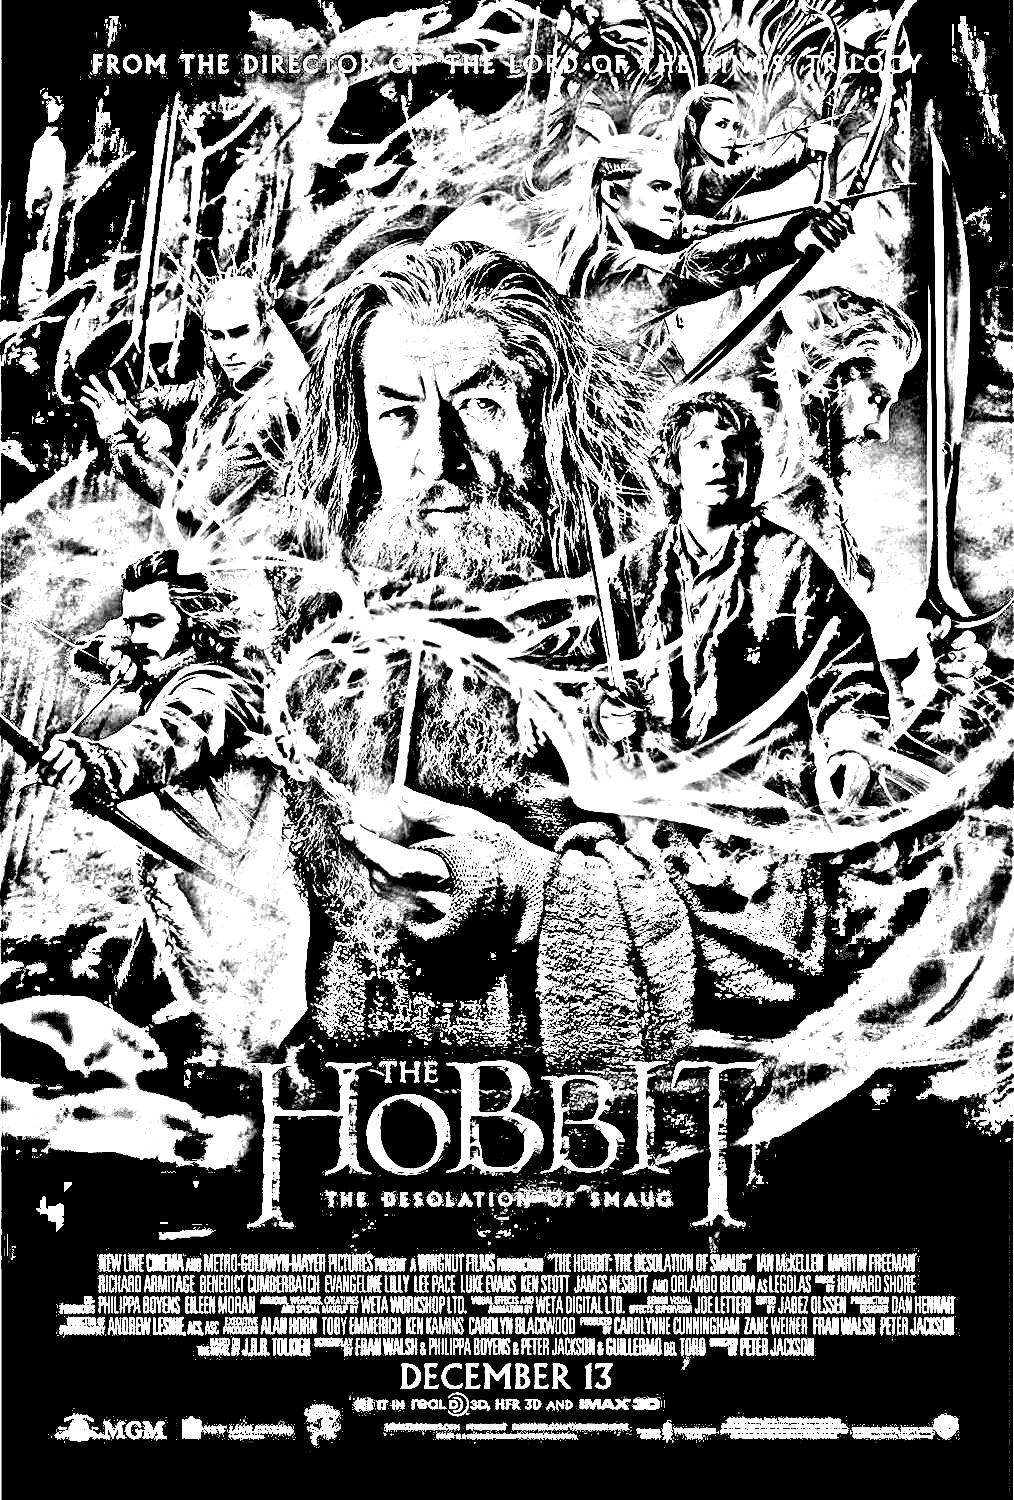 The Hobbit, the Desolation of Smaug poster - Movies Adult Coloring Pages